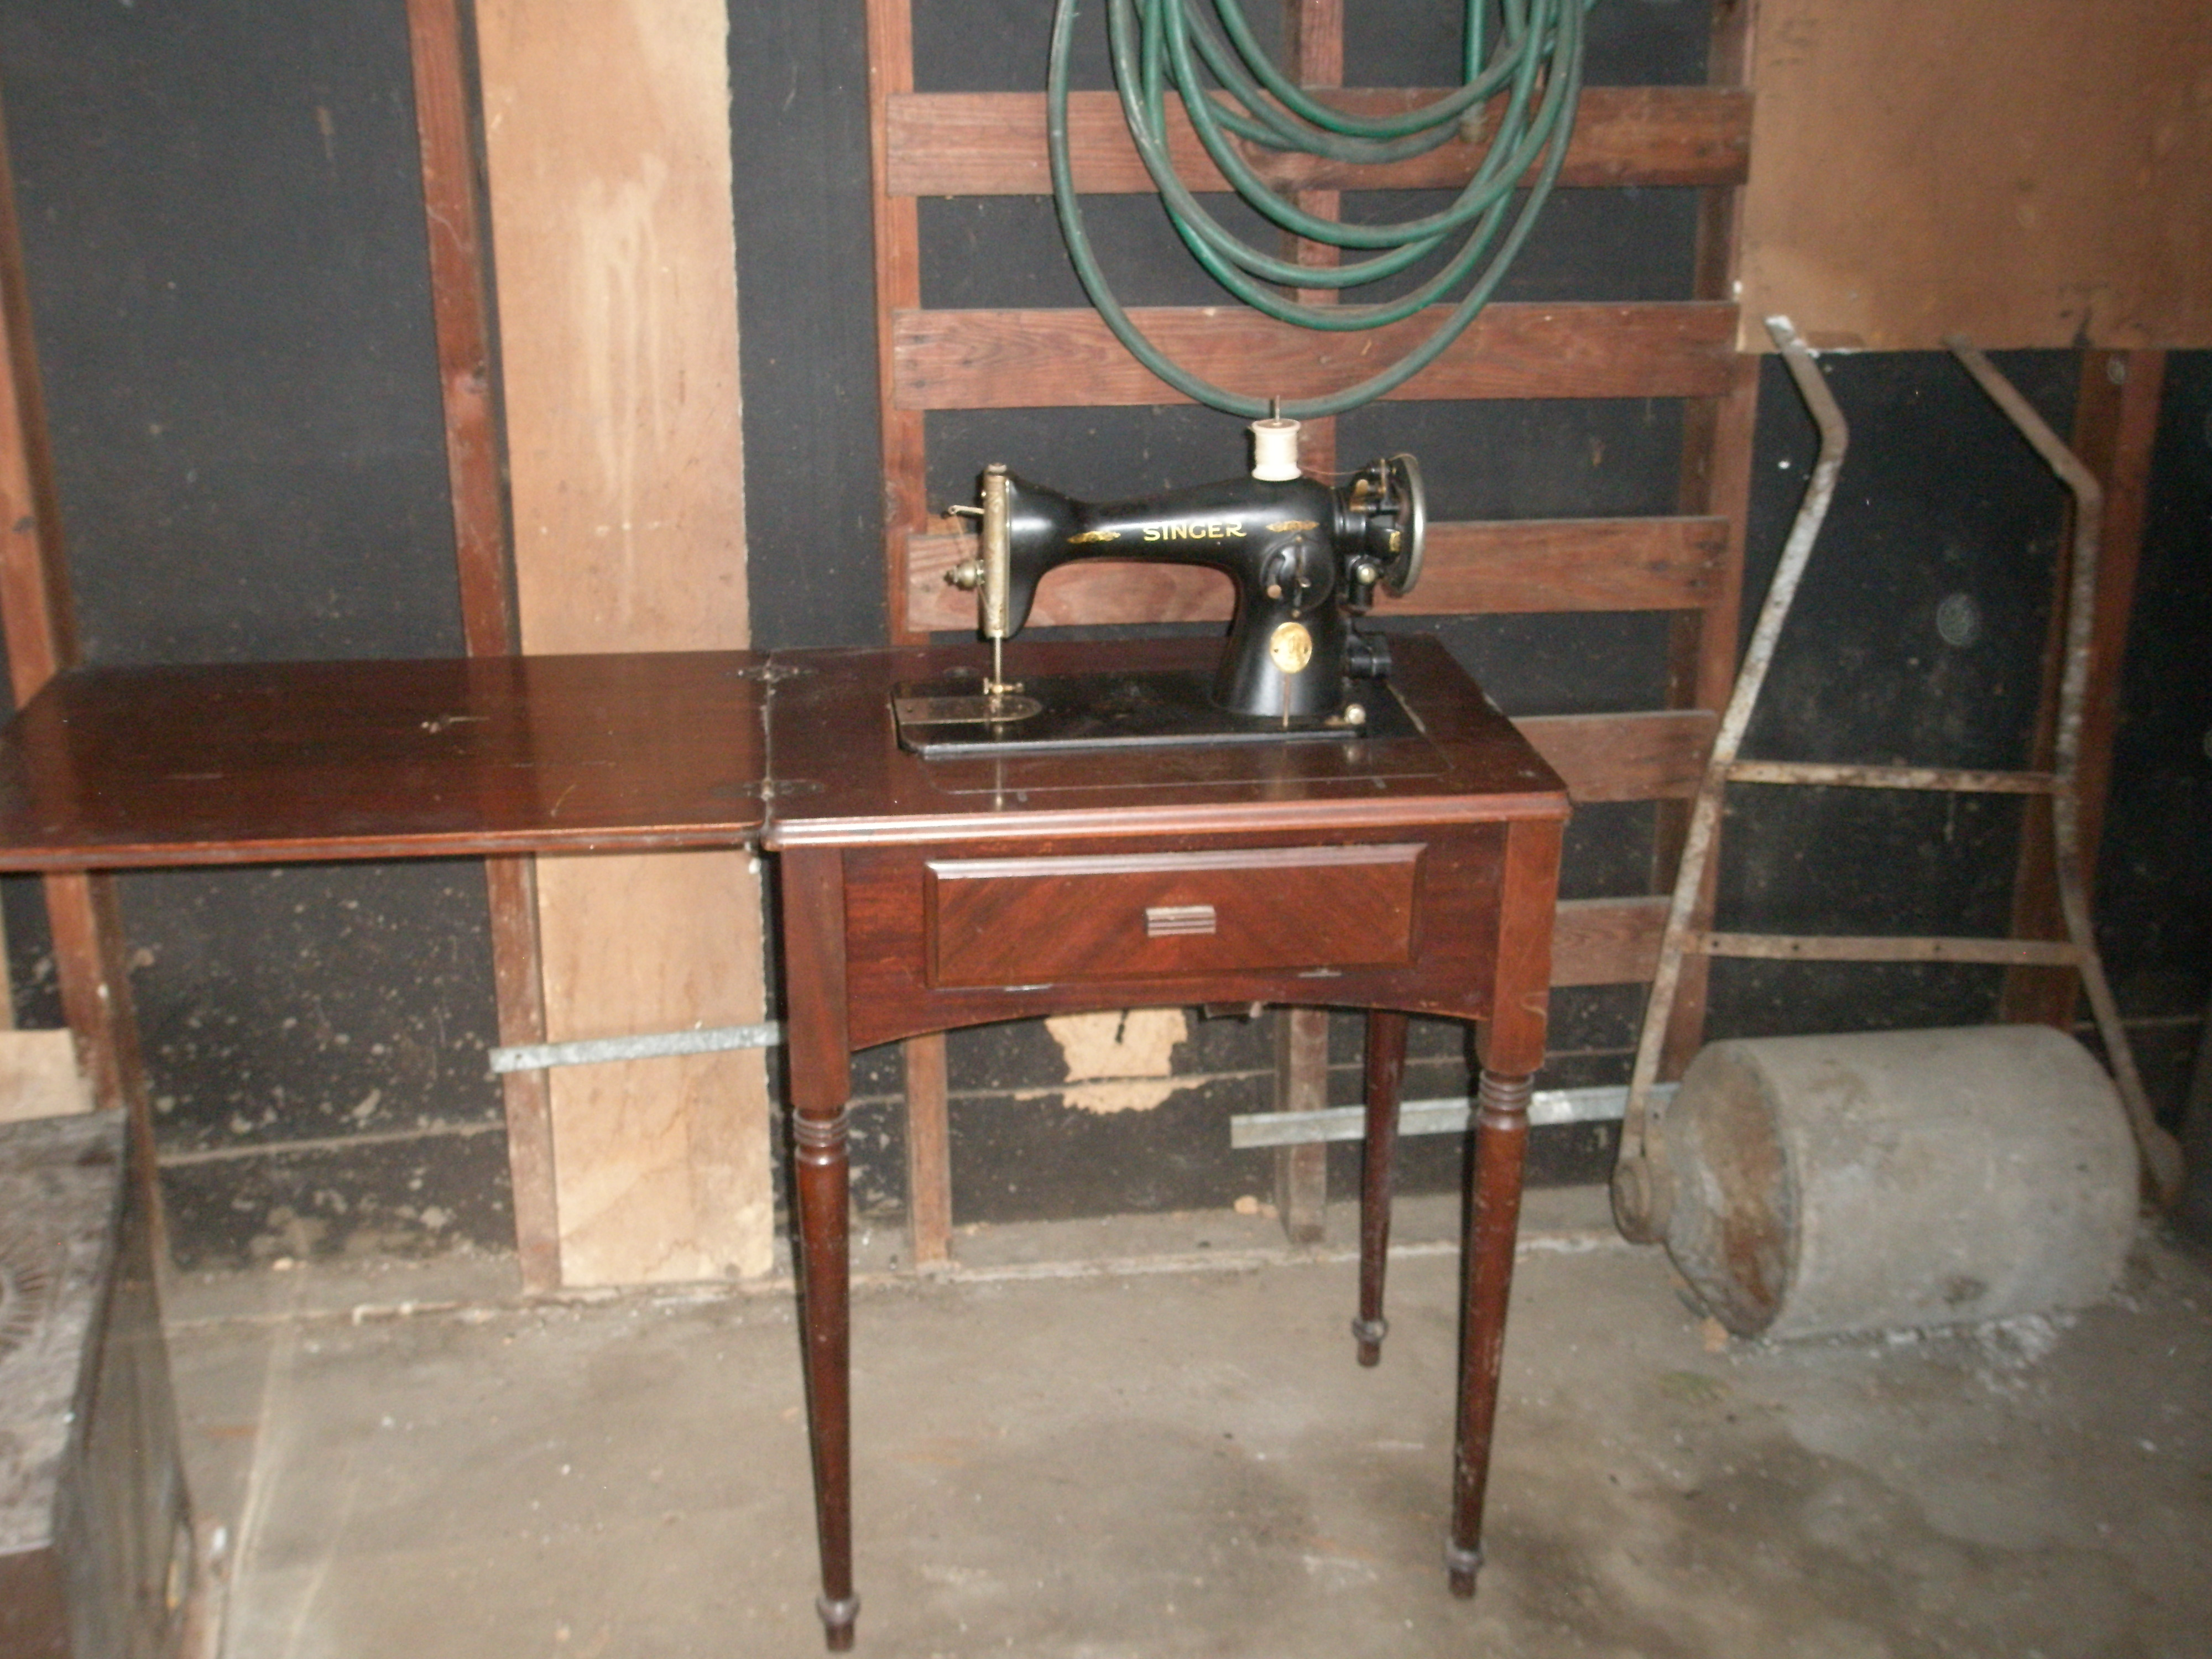 I Have Found An Old Singer Sewing Machine In My Motheru0027s Garage With The  Serial #AD778948. I Found On Line That That Model Was Manufactured In 1934.